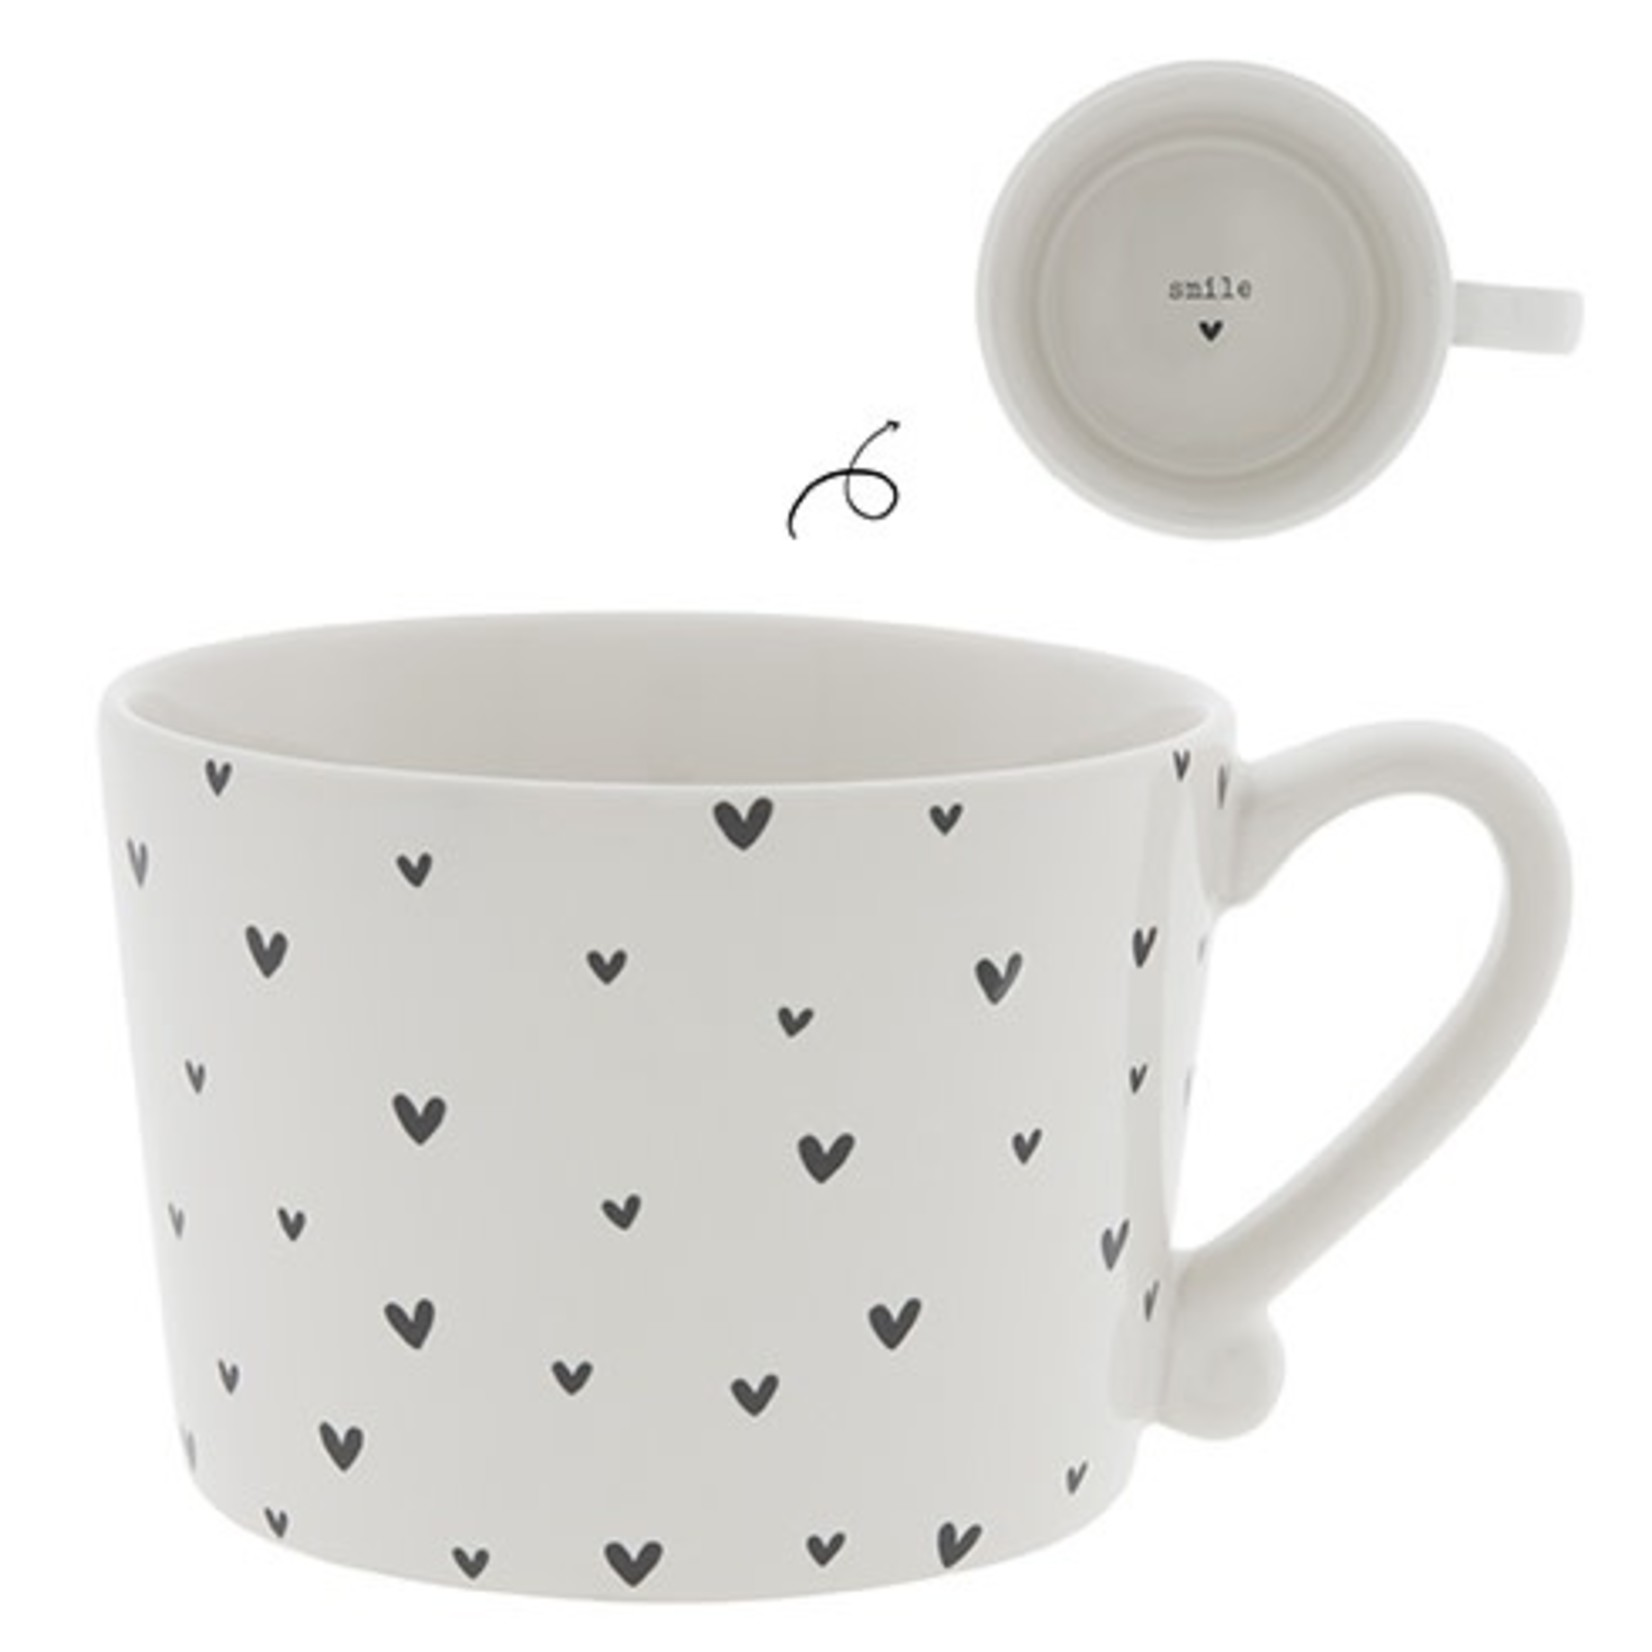 Bastion Collections Mug large White Little Hearts in Black